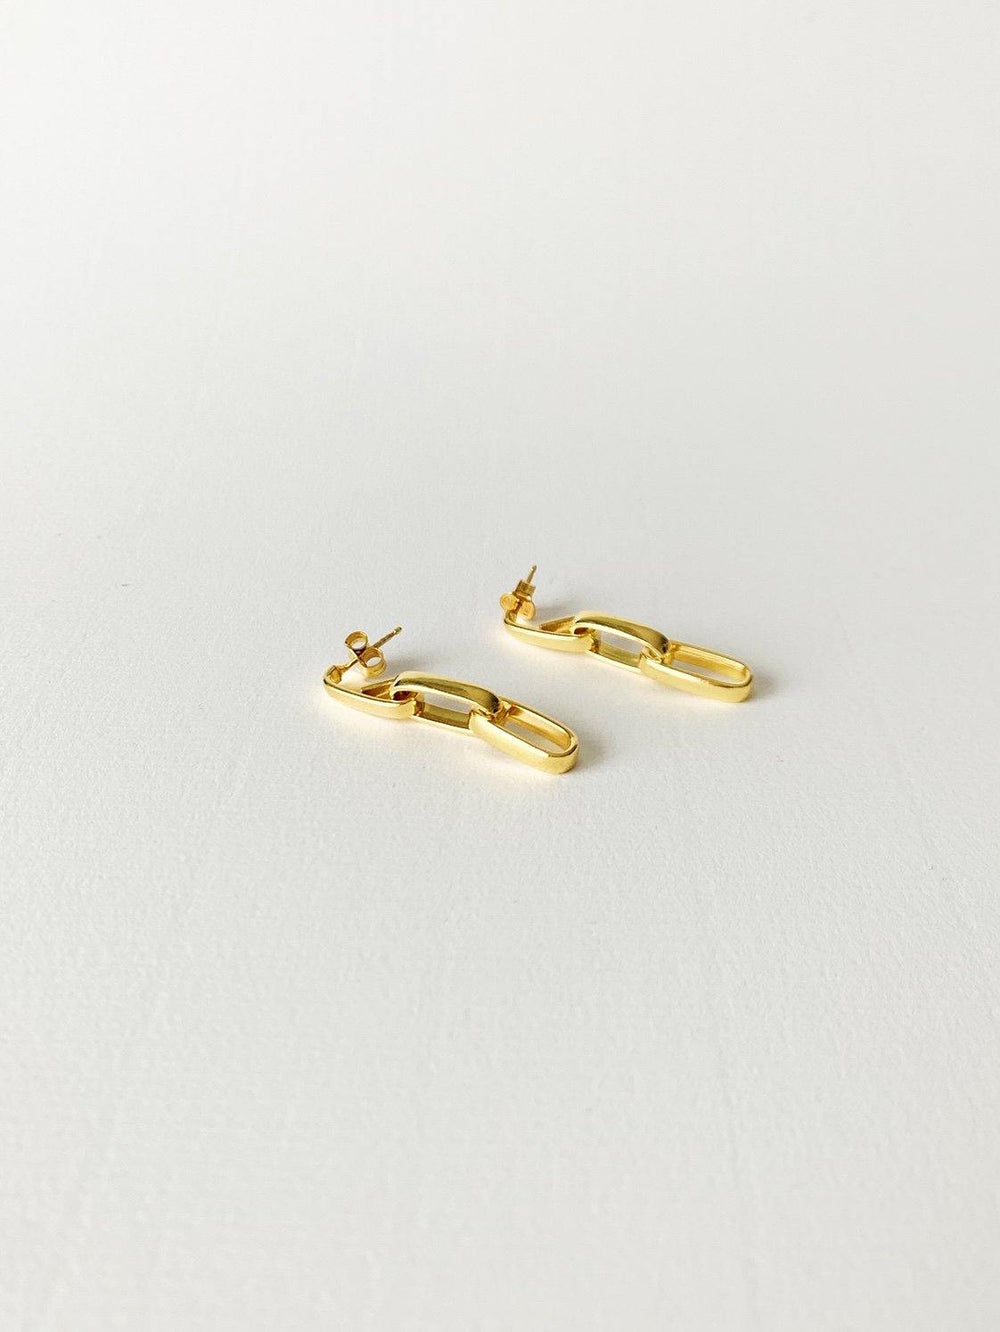 Carla Gold Earrings - Amillis